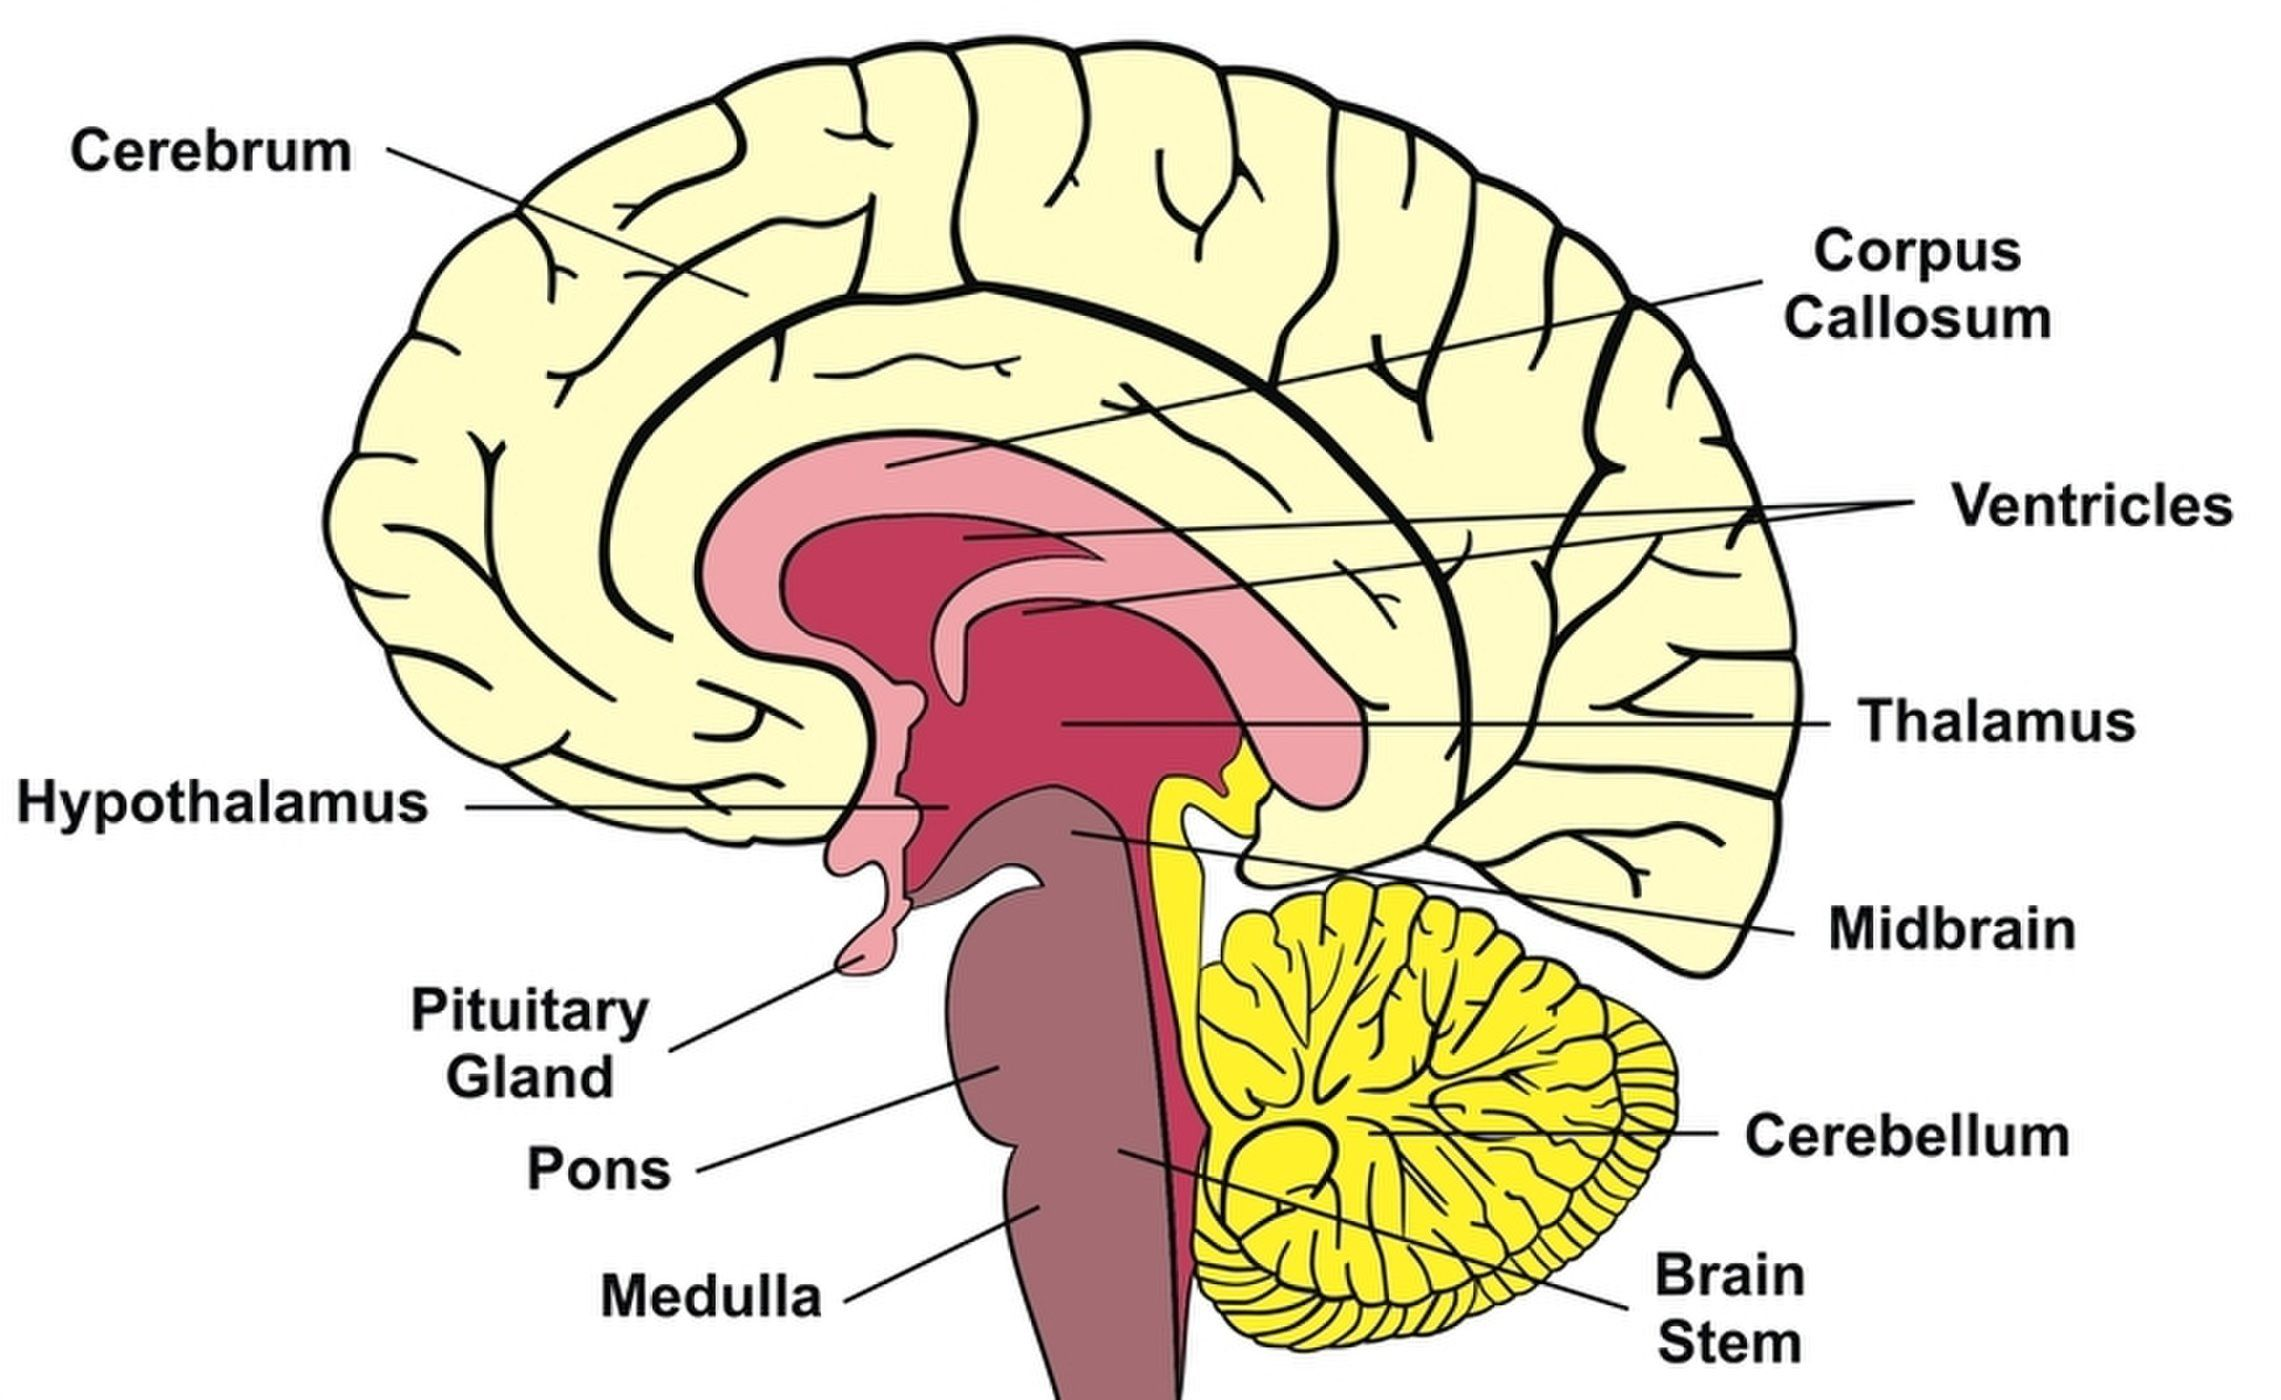 Human Brain: Facts, Functions & Anatomy | Med | Pinterest | Brain ...